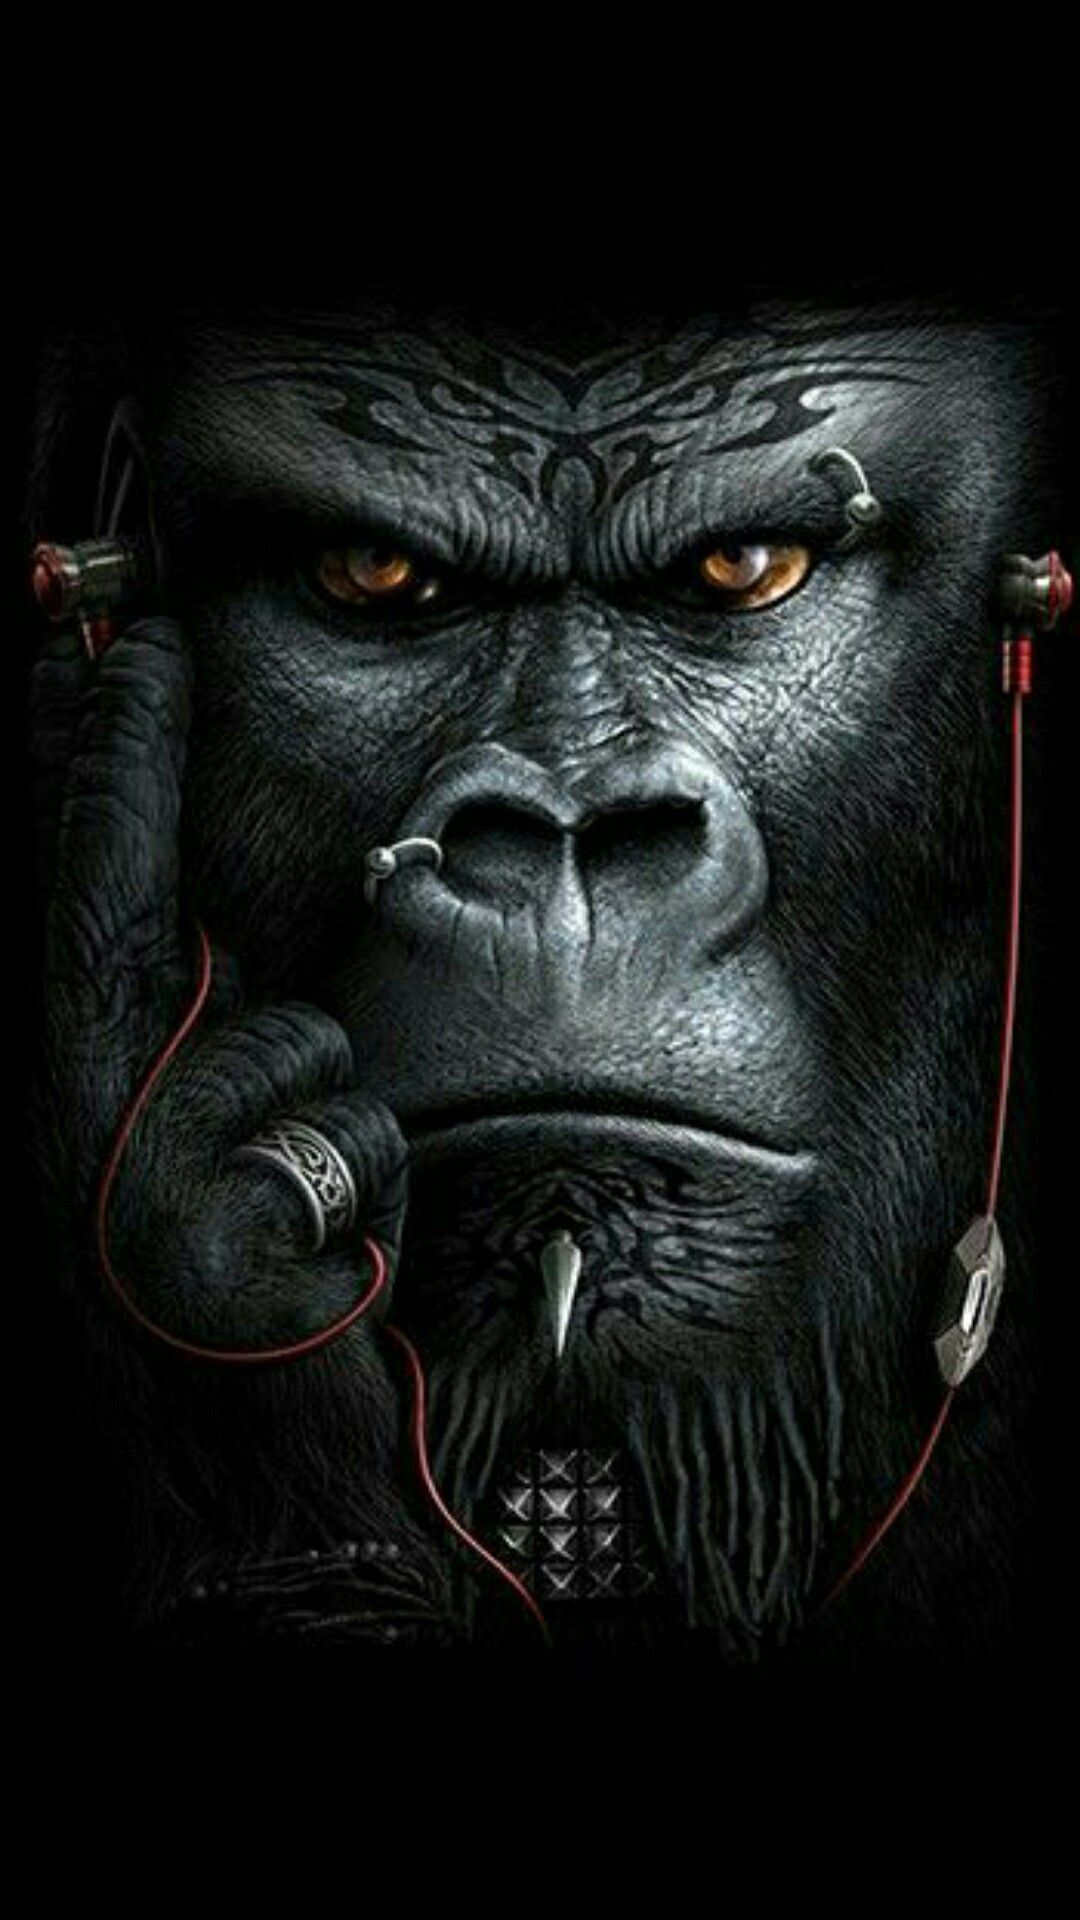 Pin by Technossroy on Android & iPhone wallpaper Gorilla